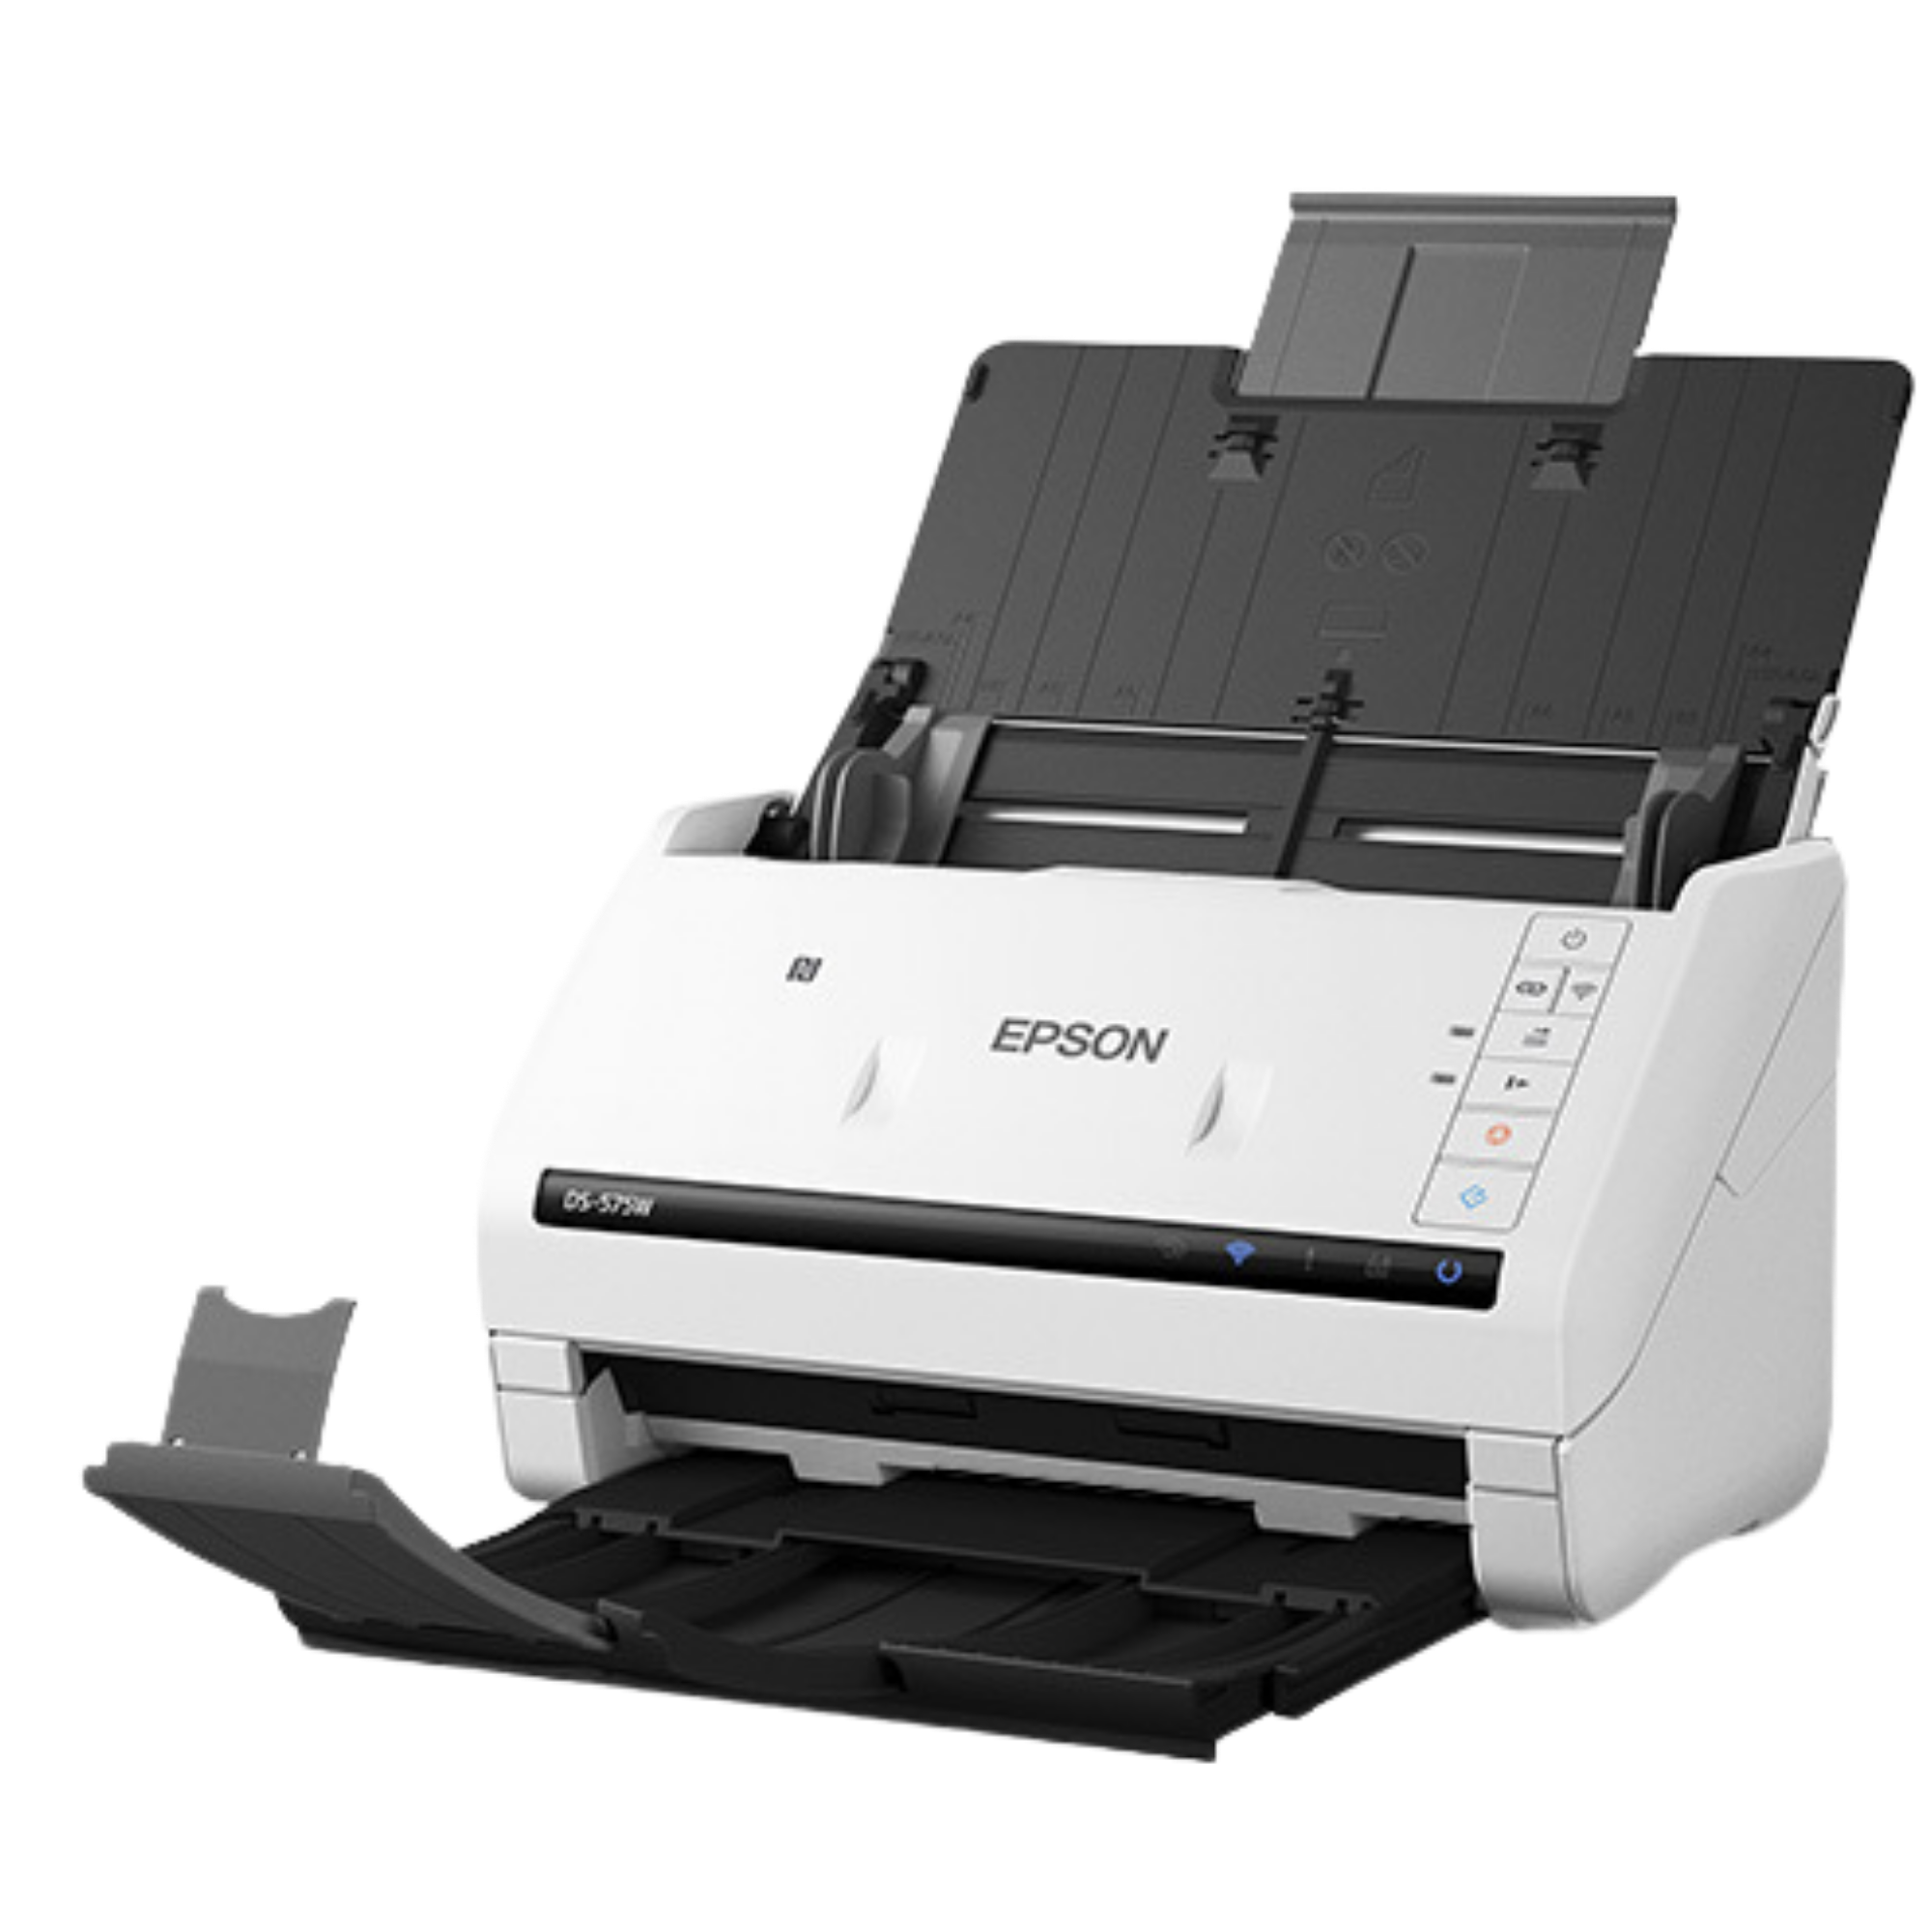 Epson DS-575W 35ppm 8.5x36